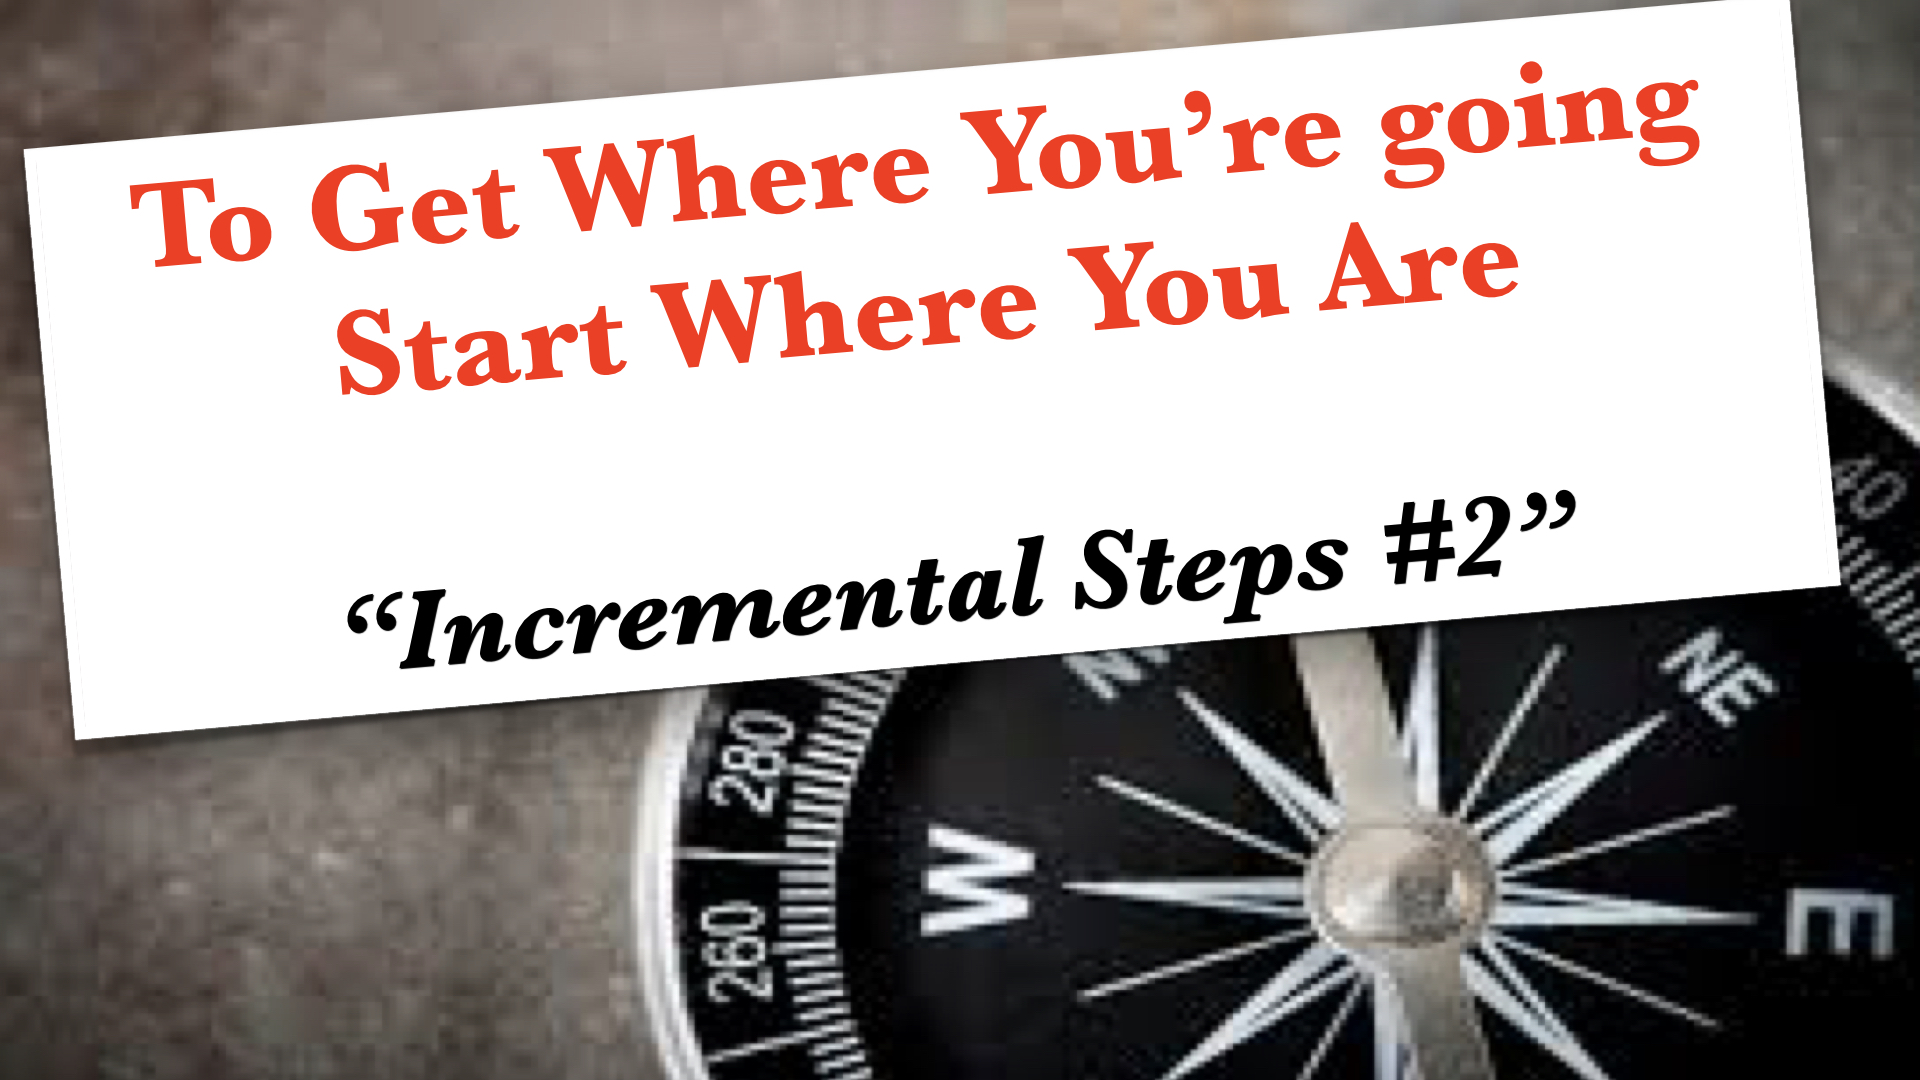 Incremental Steps 2 3172019 83146 AM